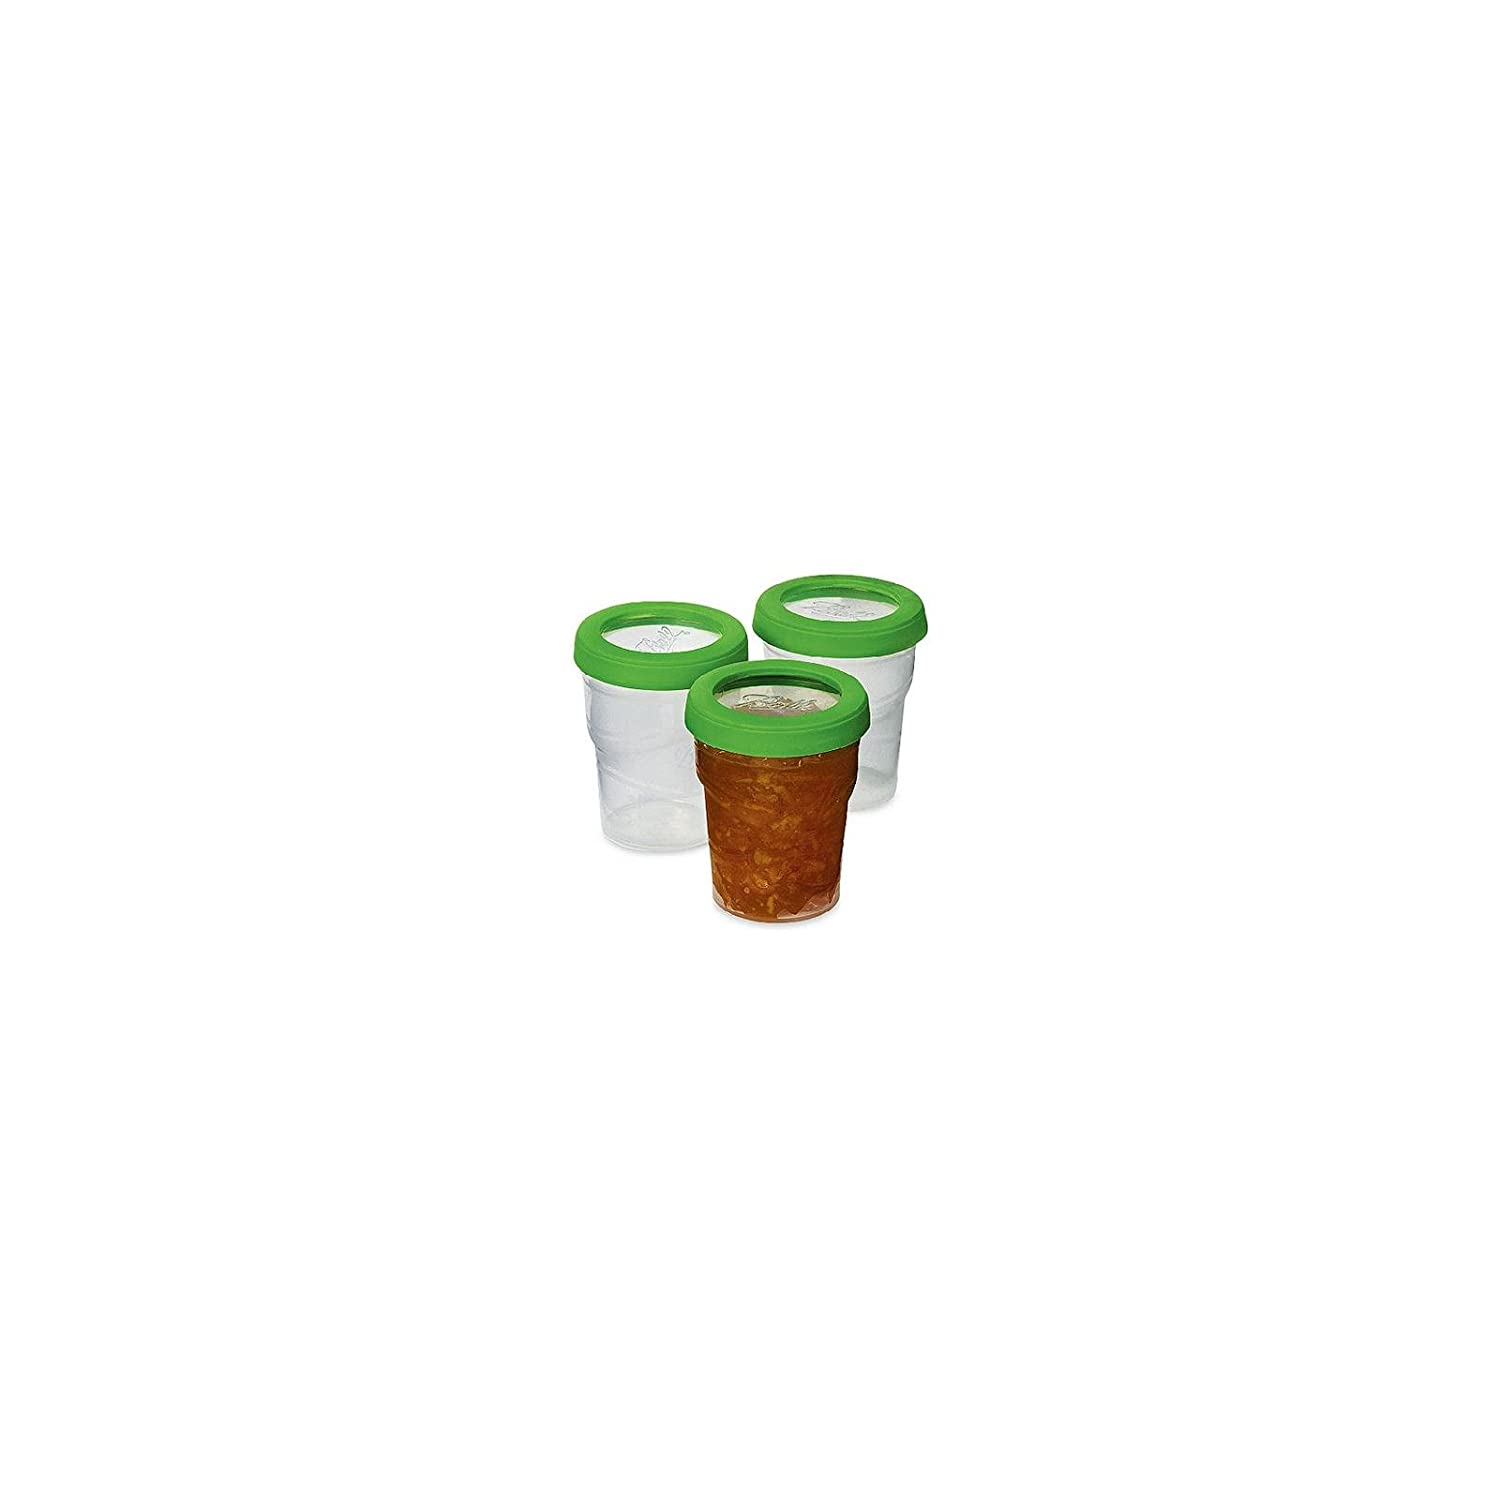 1-Pack Ball Plastic Pint Freezer Jars with Snap-On Lids 3-Count per Pack 8-Ounces